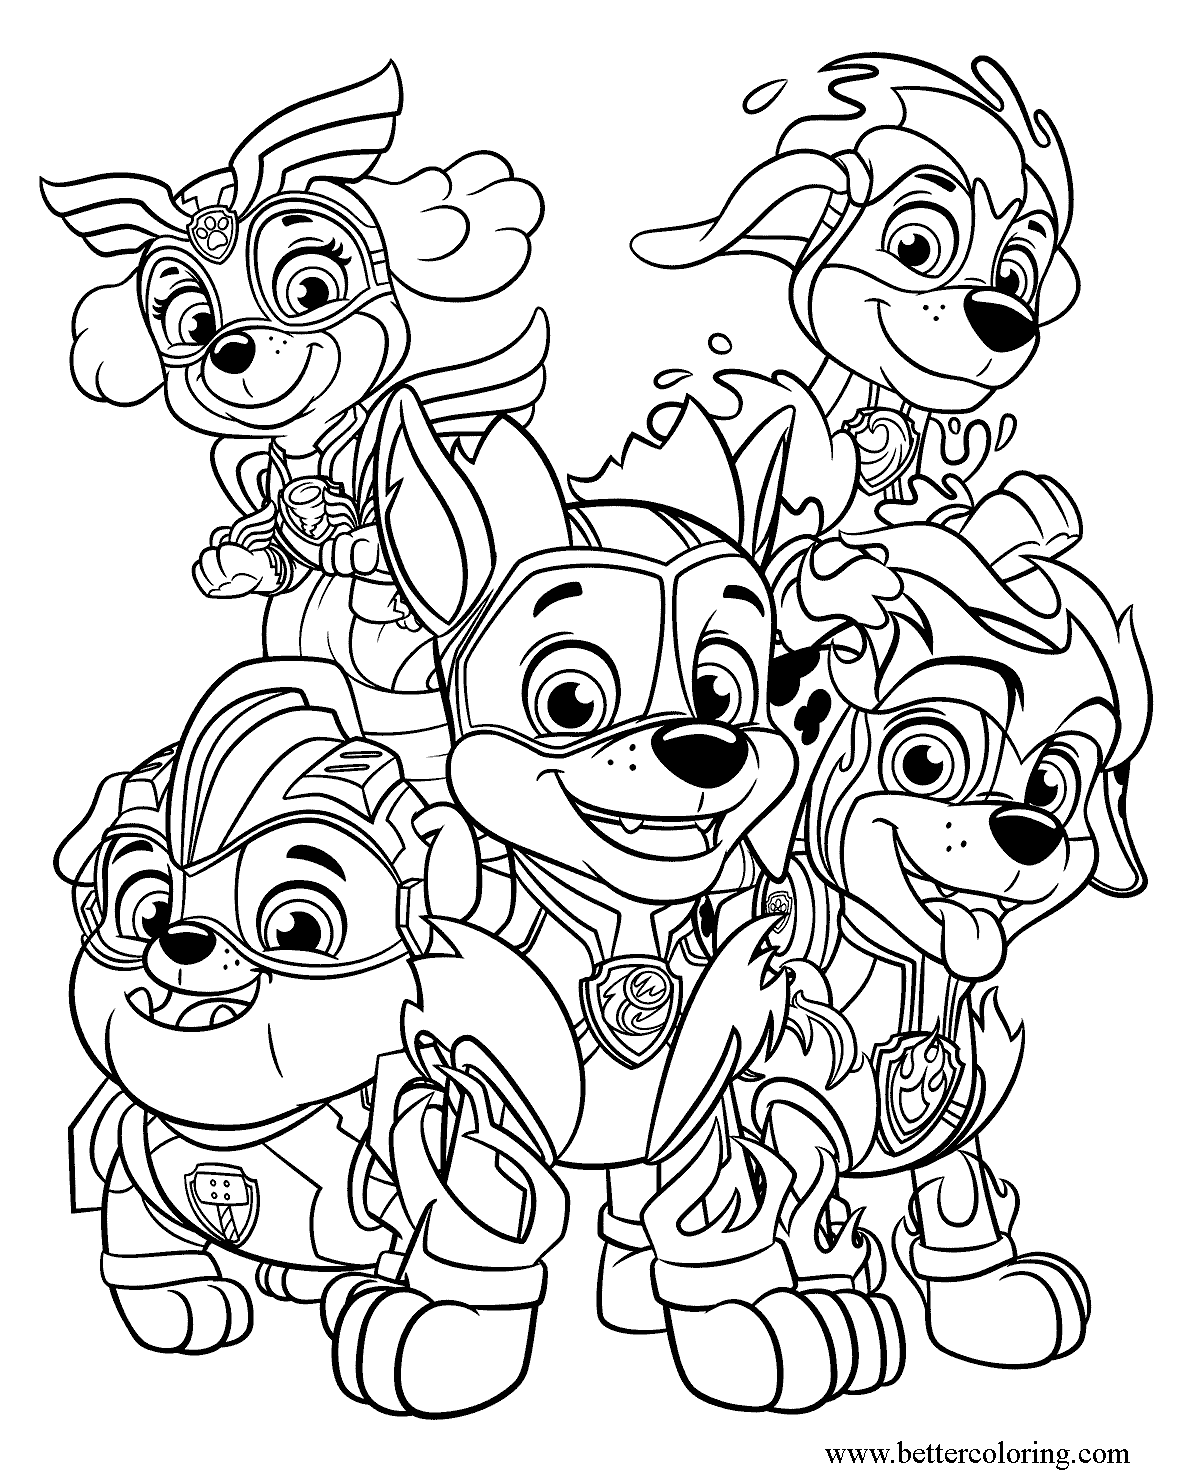 Free Mighty Pups Coloring Pages printable